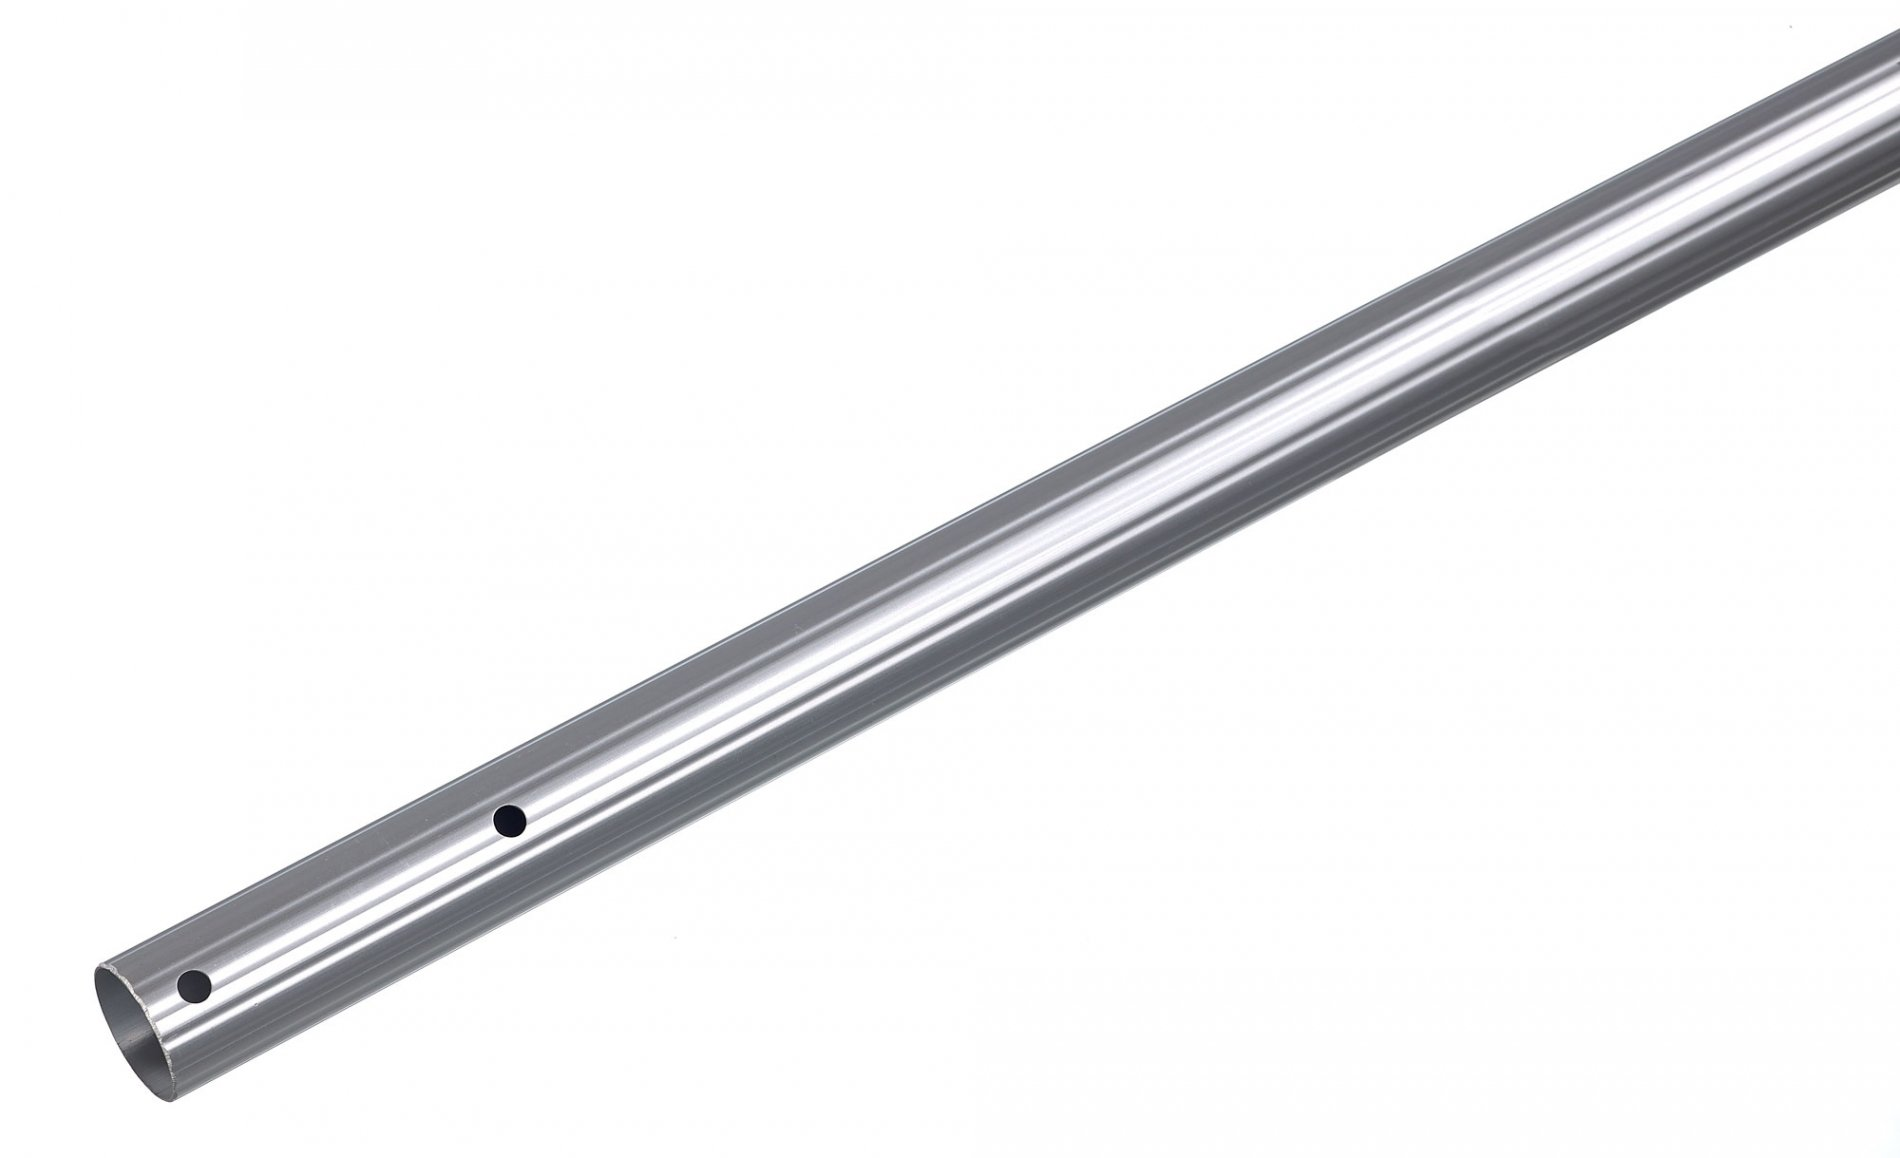 Mega Pool aluminium telescopic pole 2 4m | Webshop